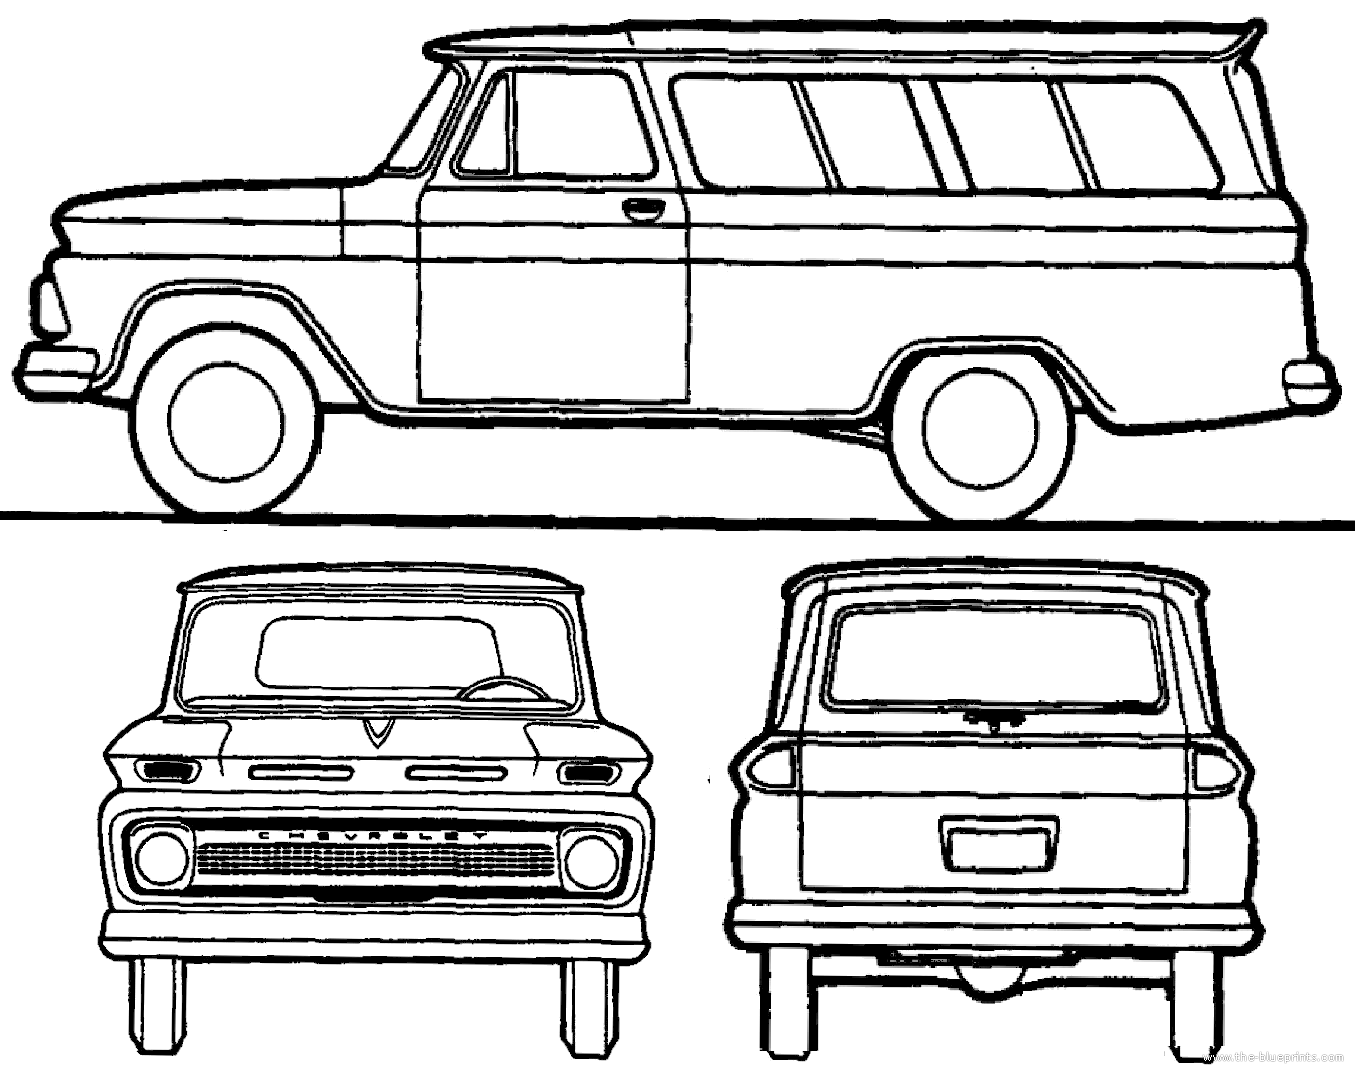 1965 Chevy Truck Drawings 6066 Idea Page315 Best Cartoon Corvair Wiring Diagram Diy Enthusiasts